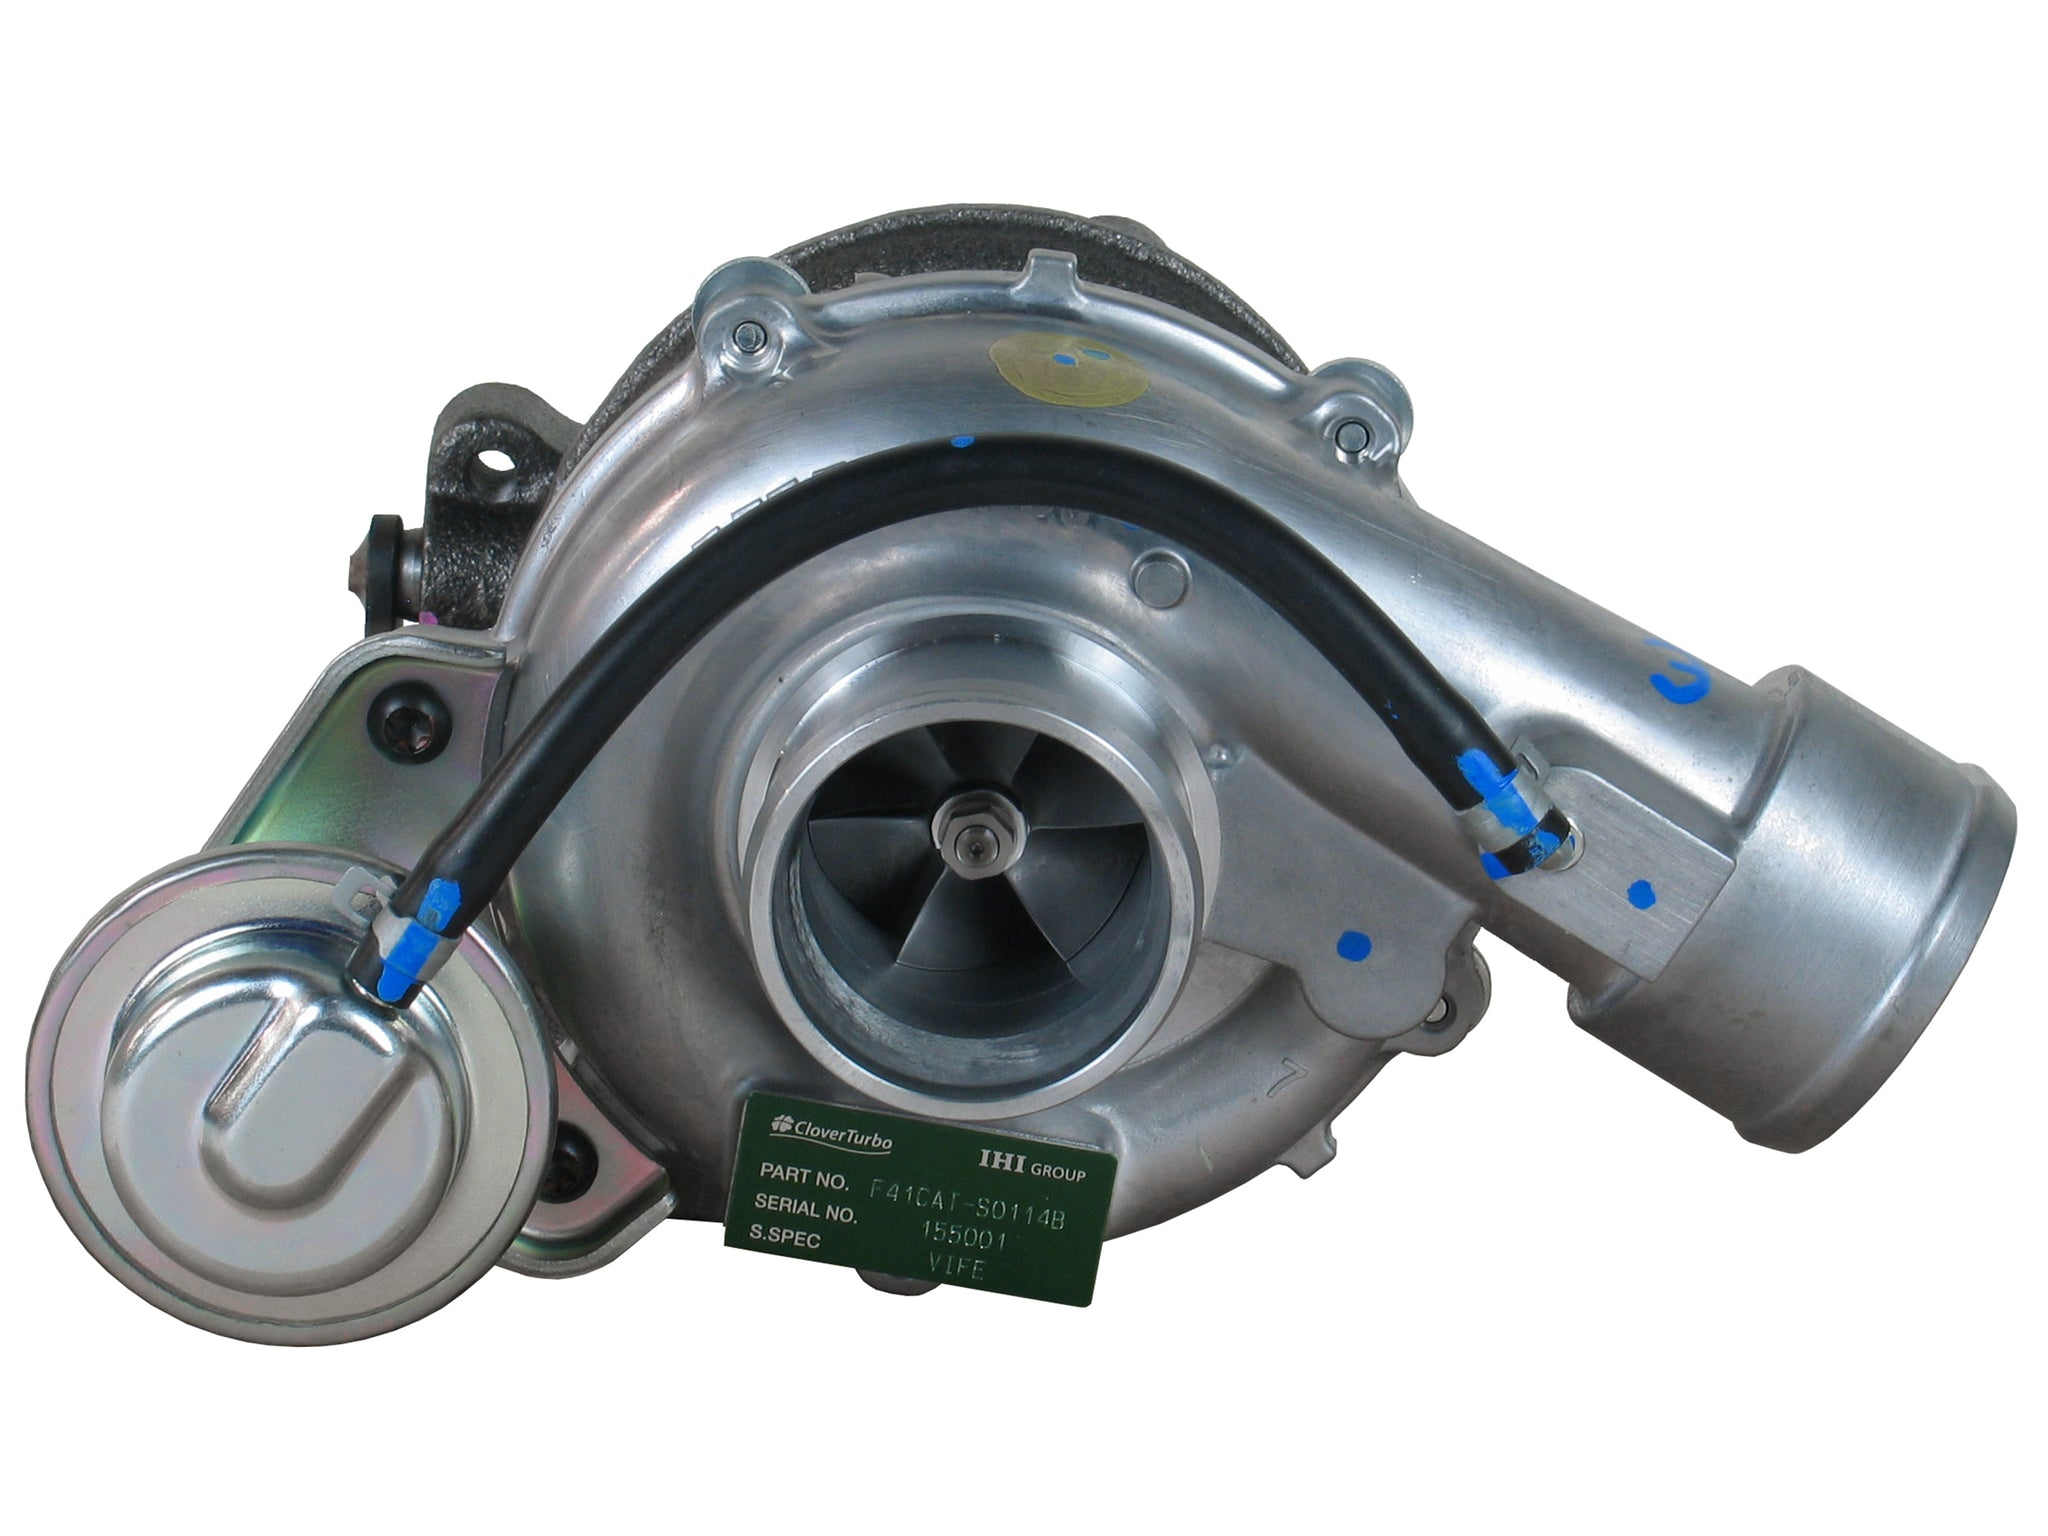 Isuzu 8980118923 V-420114 VIFE Turbo NEW OEM IHI RHF4H Turbocharger - TurboTurbos